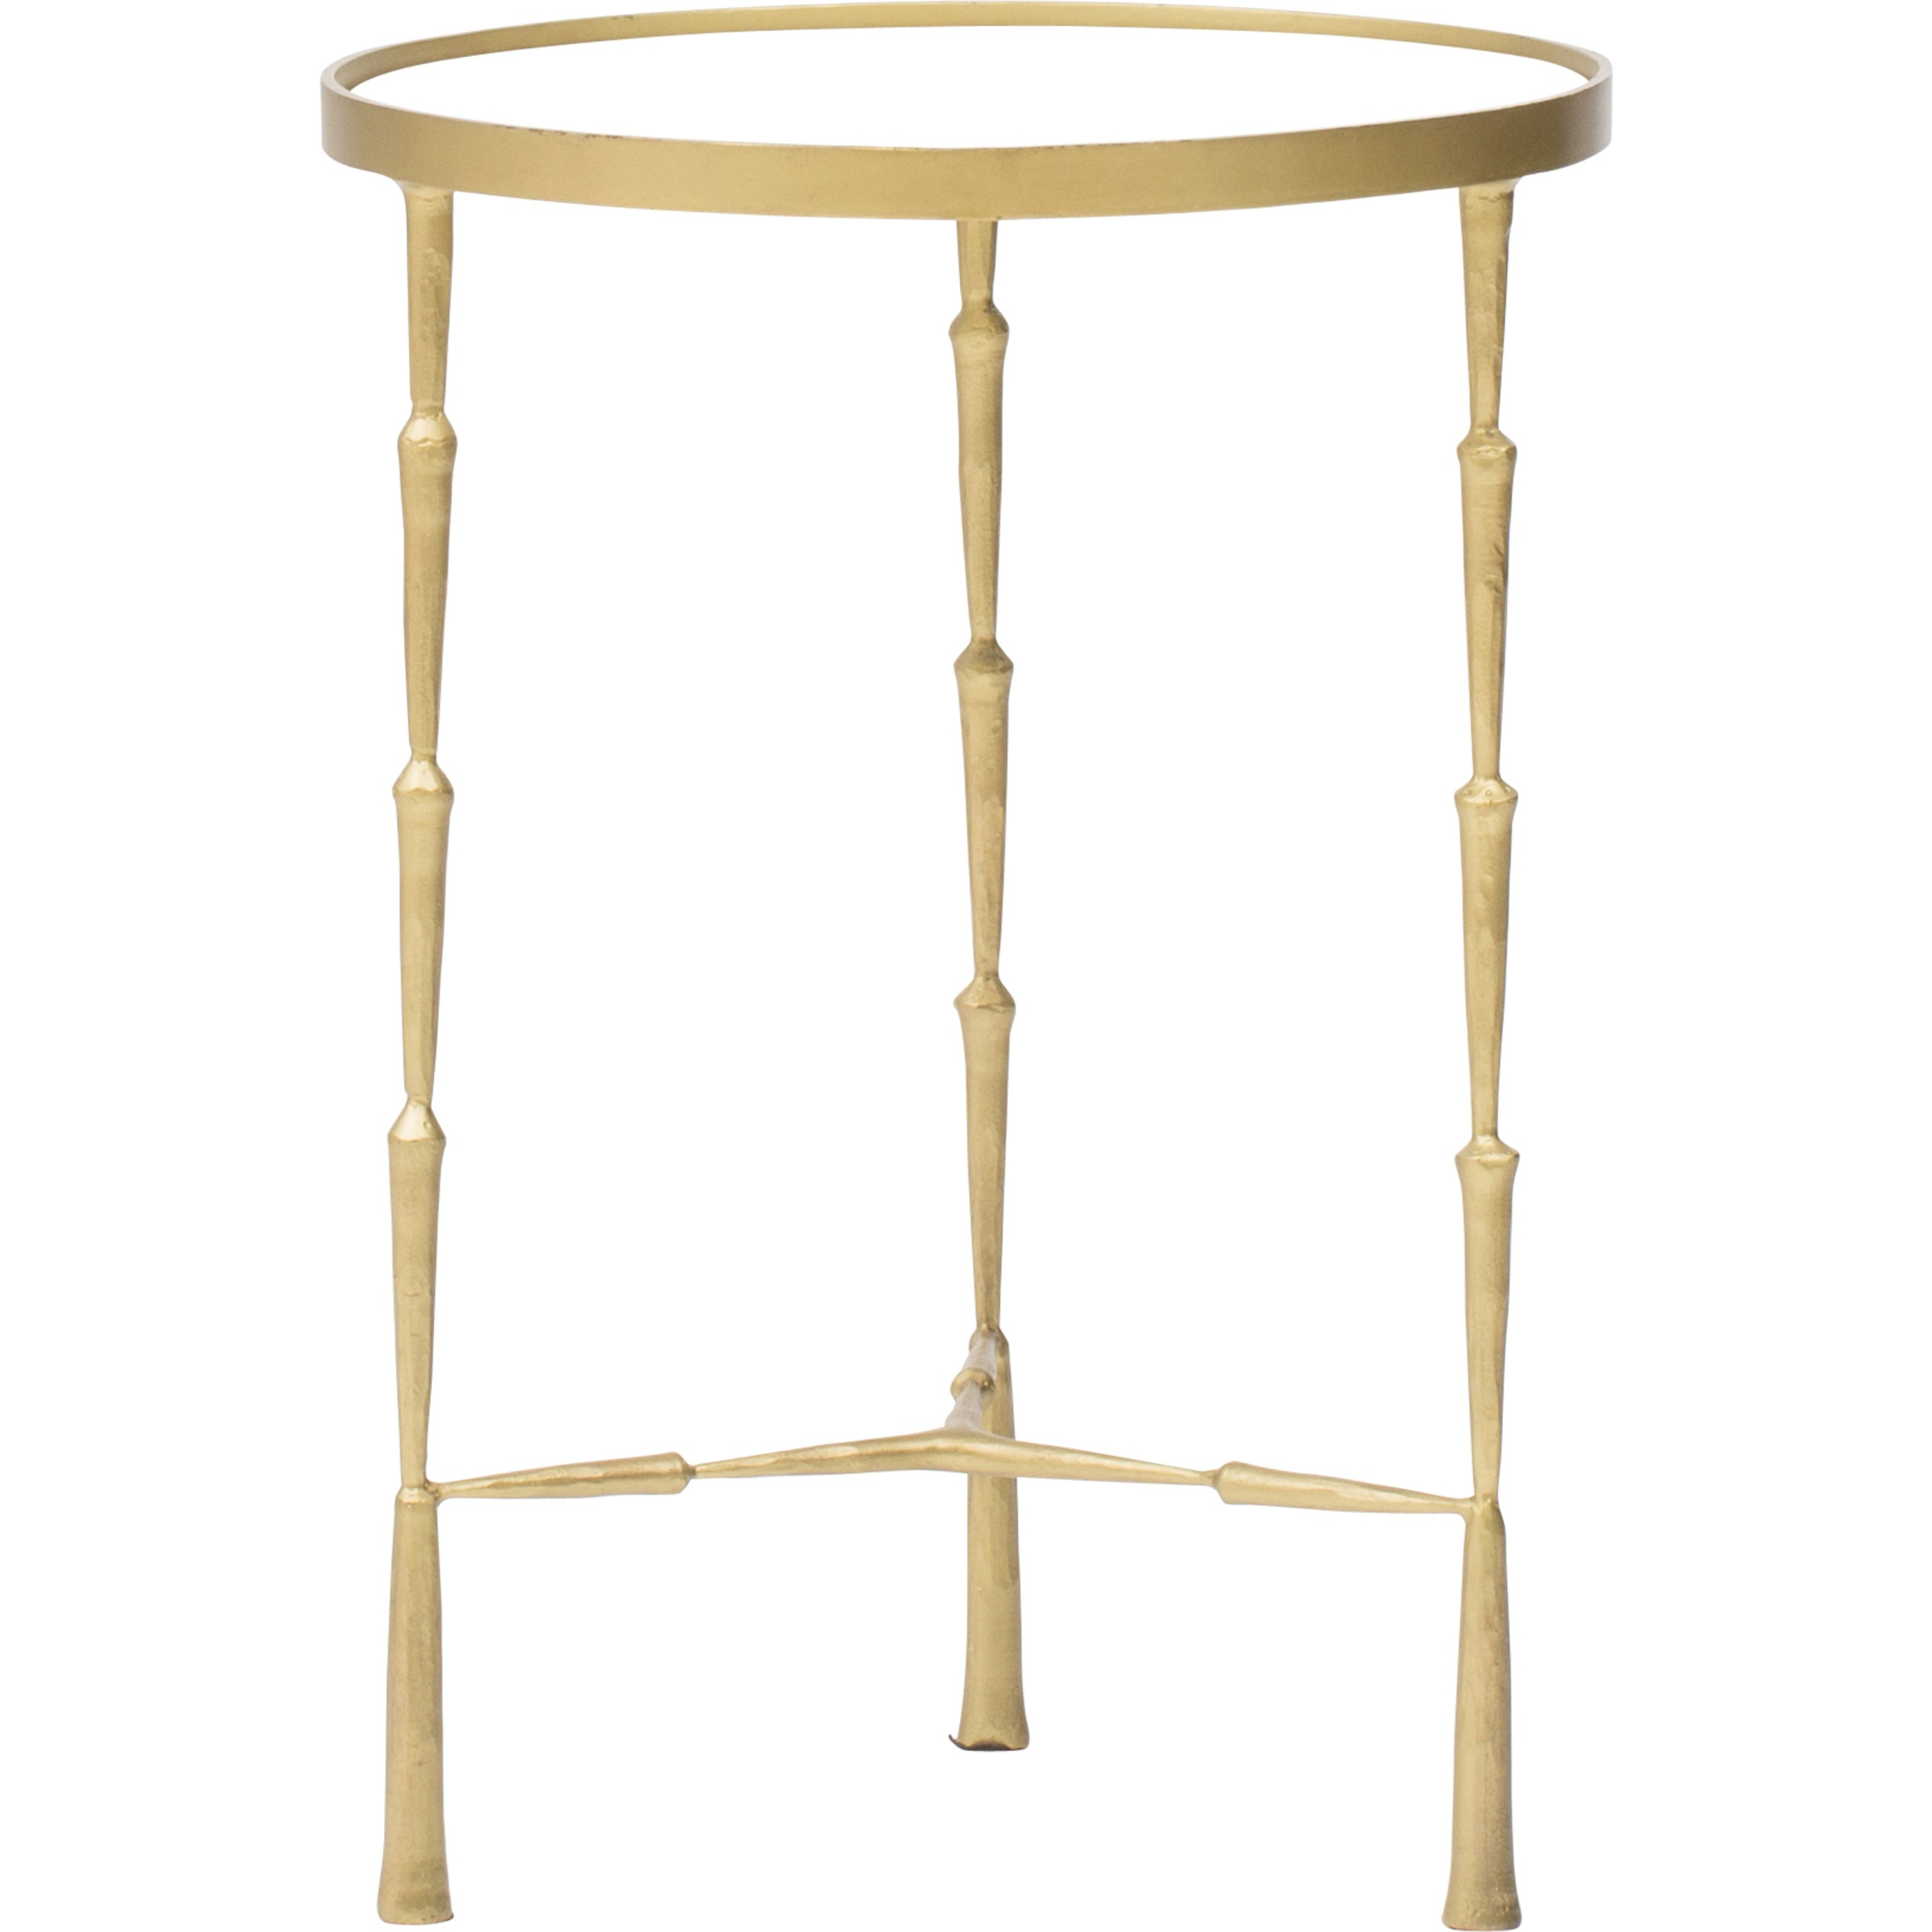 spike accent table brass tables furniture large tan threshold black metal lamp bookshelf with glass doors steel end white half moon inch hairpin legs universal broadmoore target